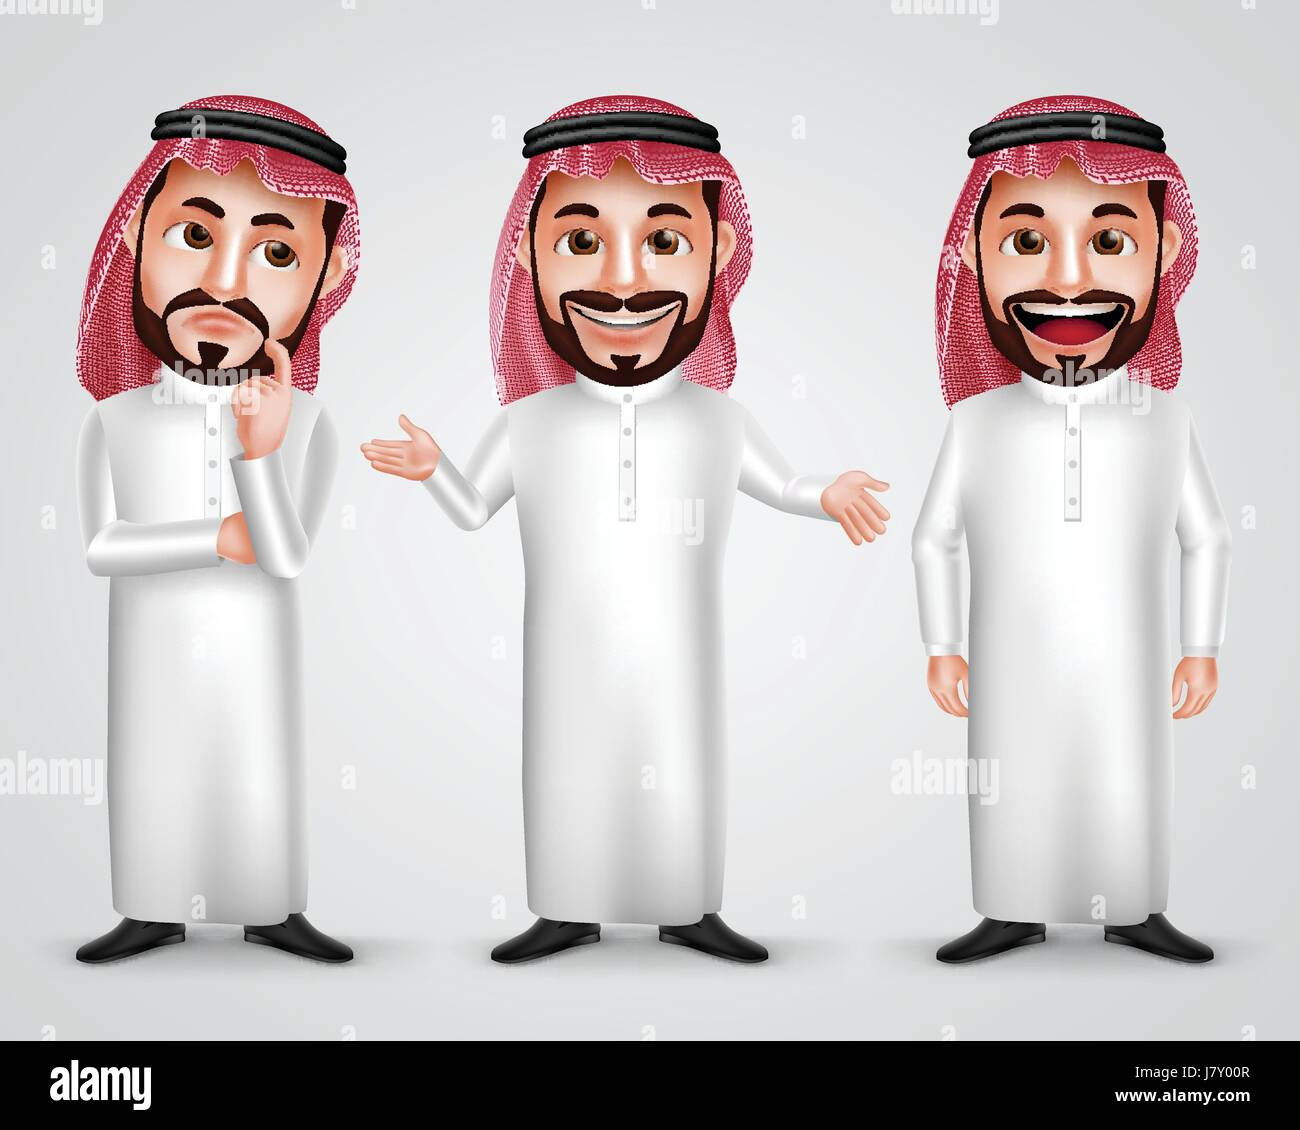 Saudi Arab man vector character set wearing thobe and gutra with different friendly gesture like thinking, speaking - Stock Image